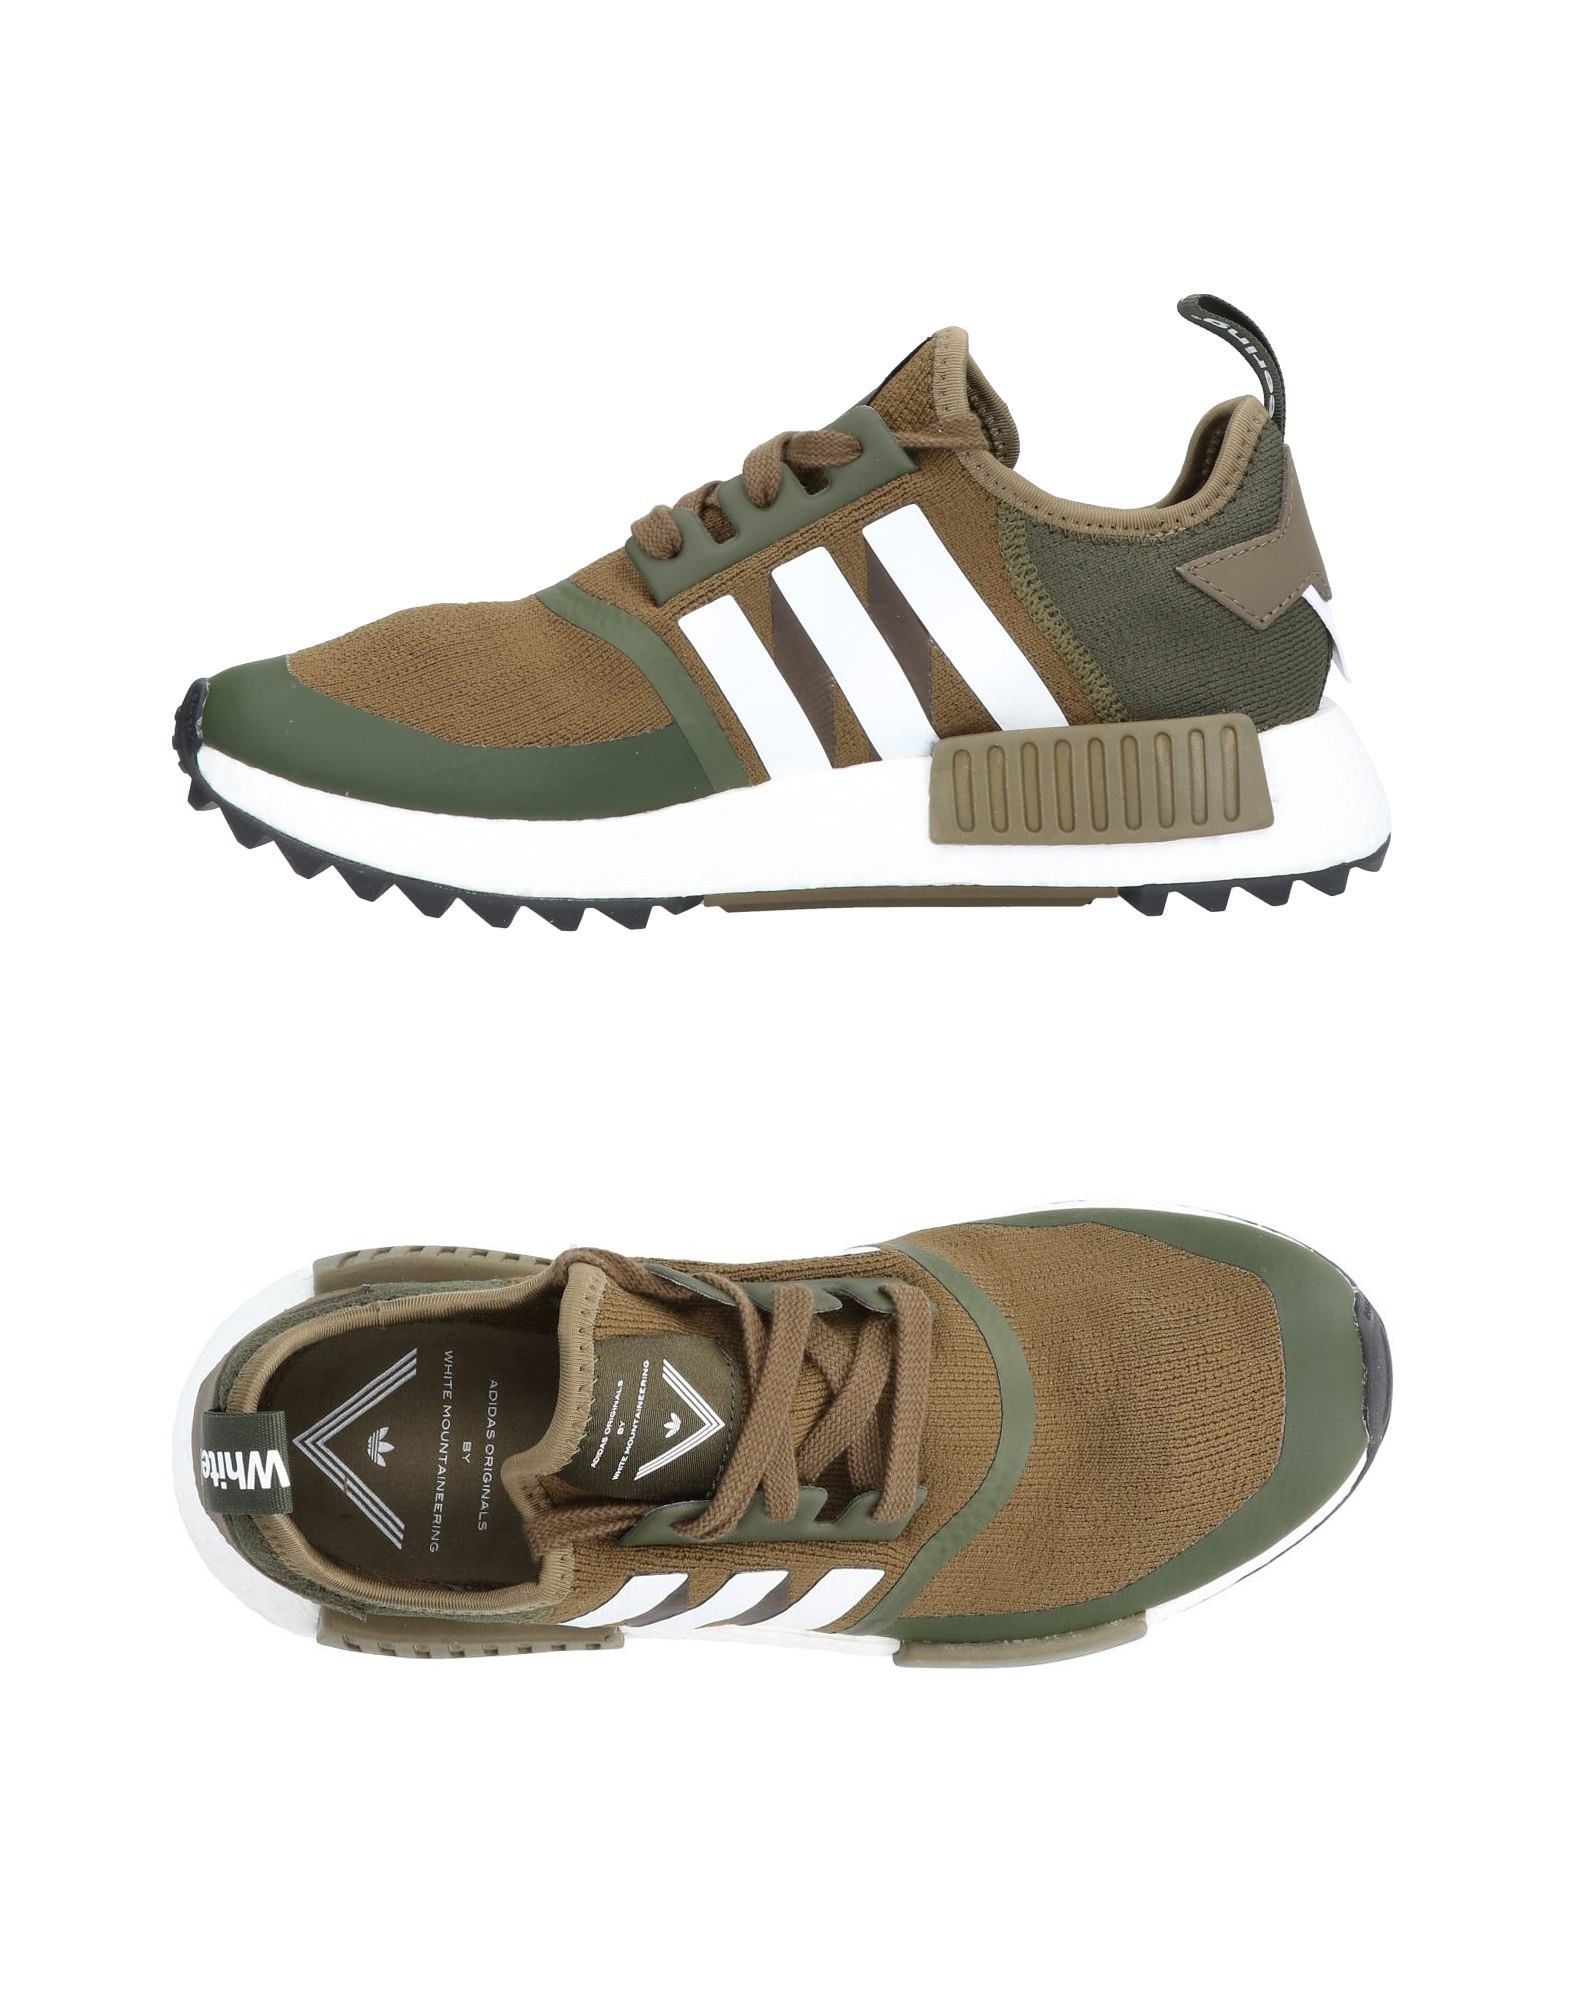 ADIDAS X WHITE MOUNTAINEERING Sneakers in Military Green